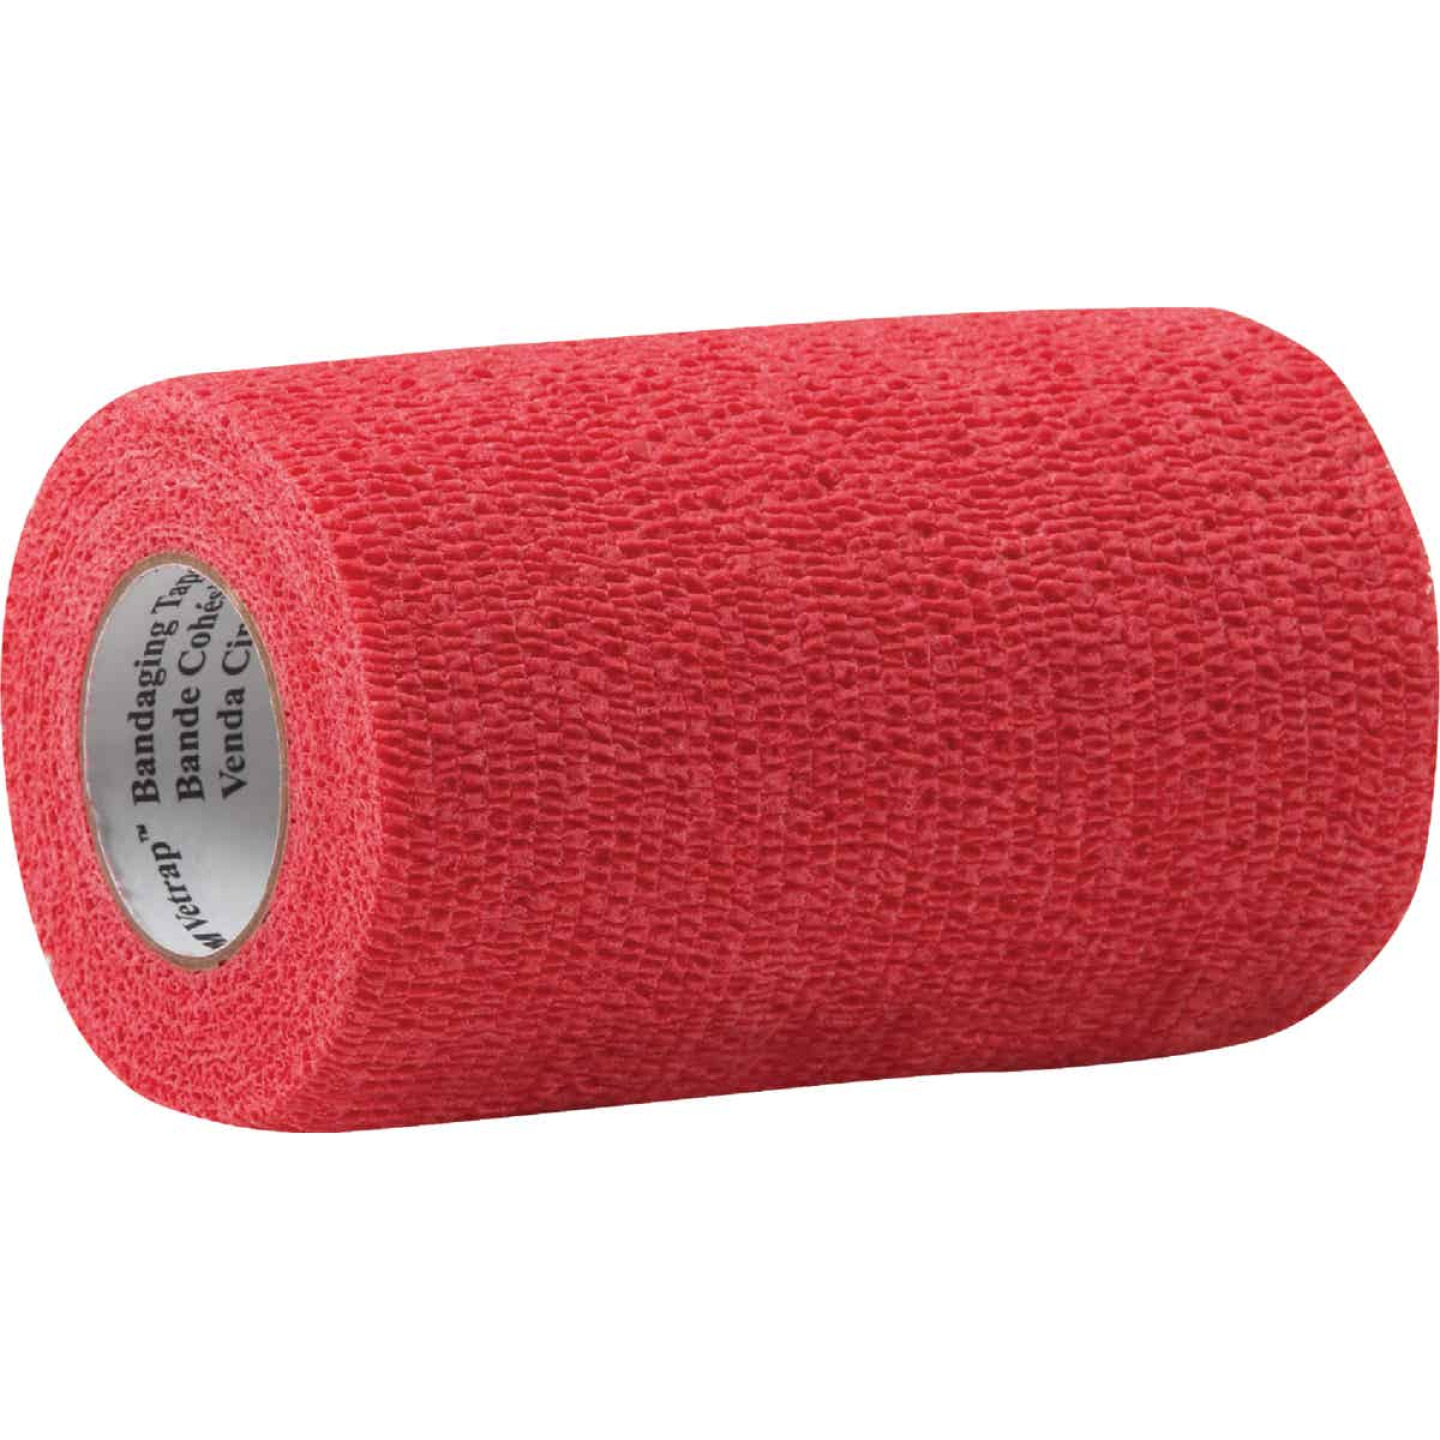 3M Vetrap 4 In. x 5 Yd. Red Bandaging Wrap Image 1